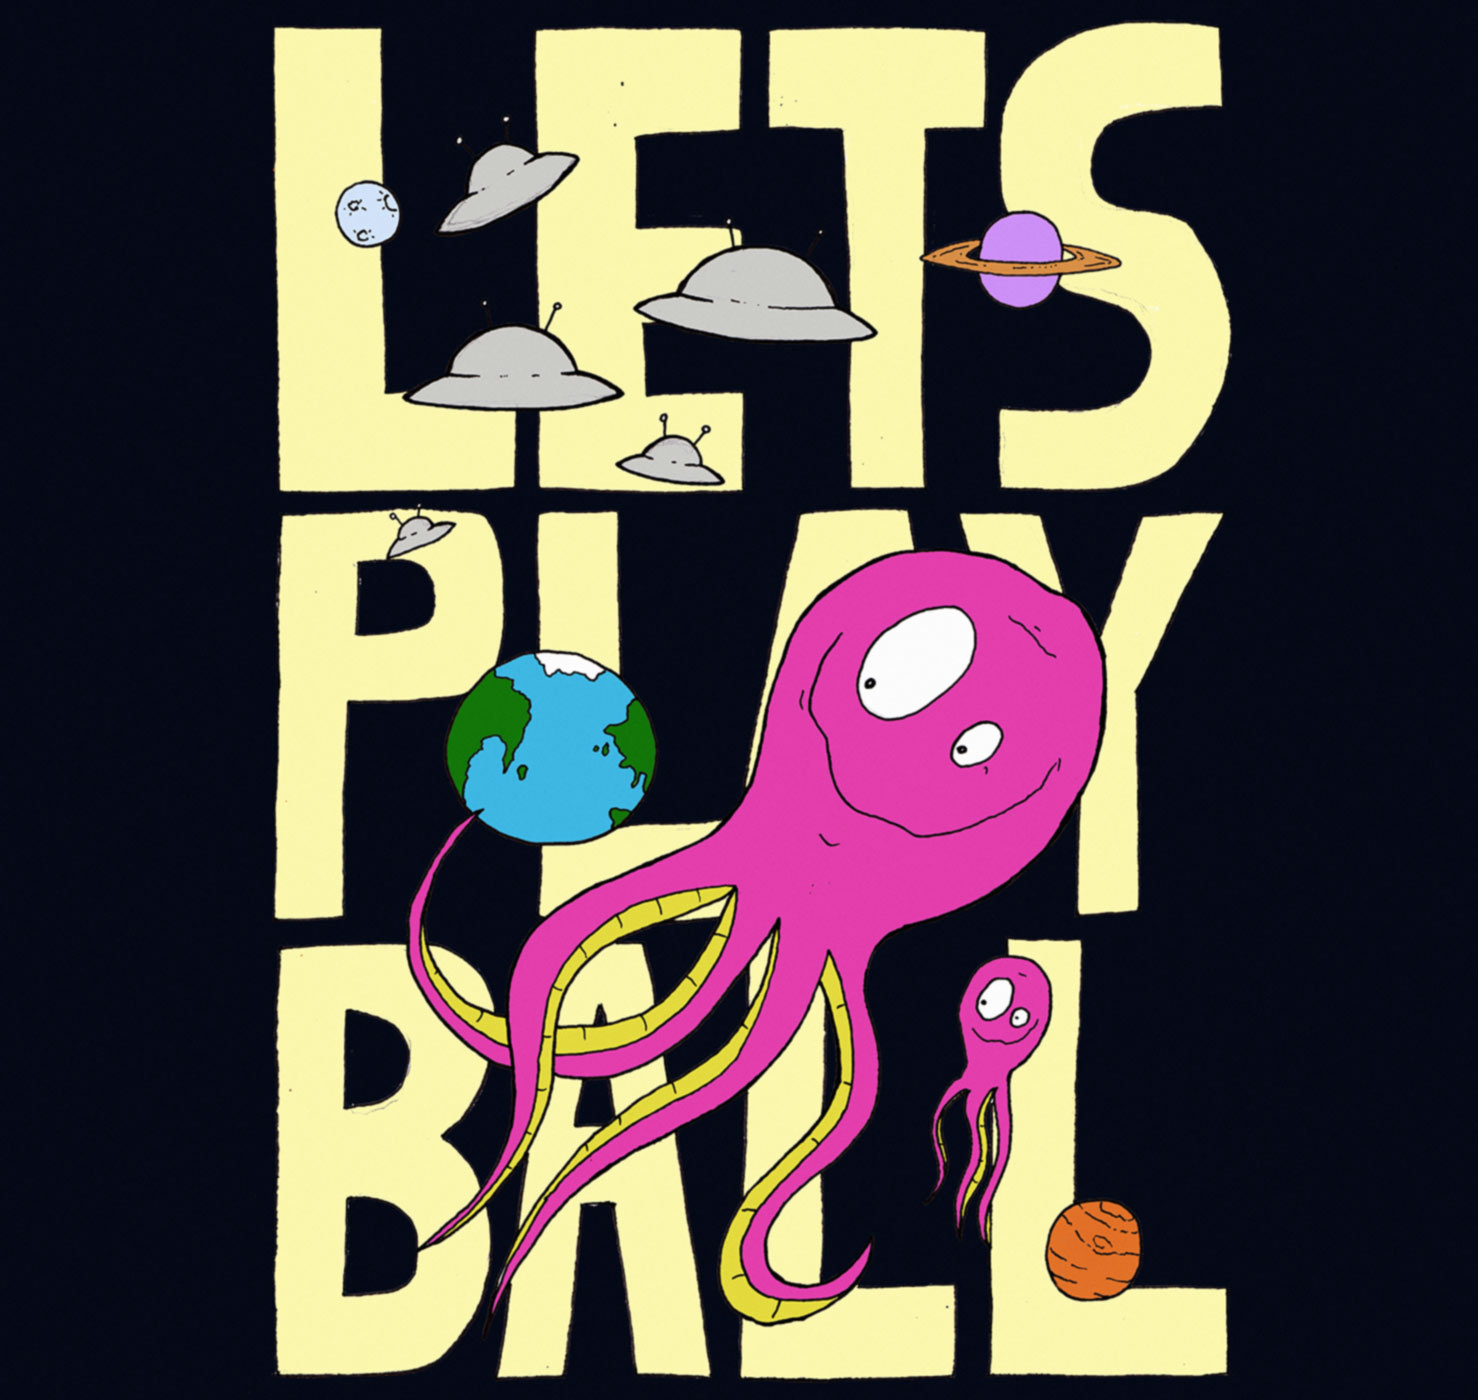 Play Ball by Leeds artist Mr Mascall - SHSO